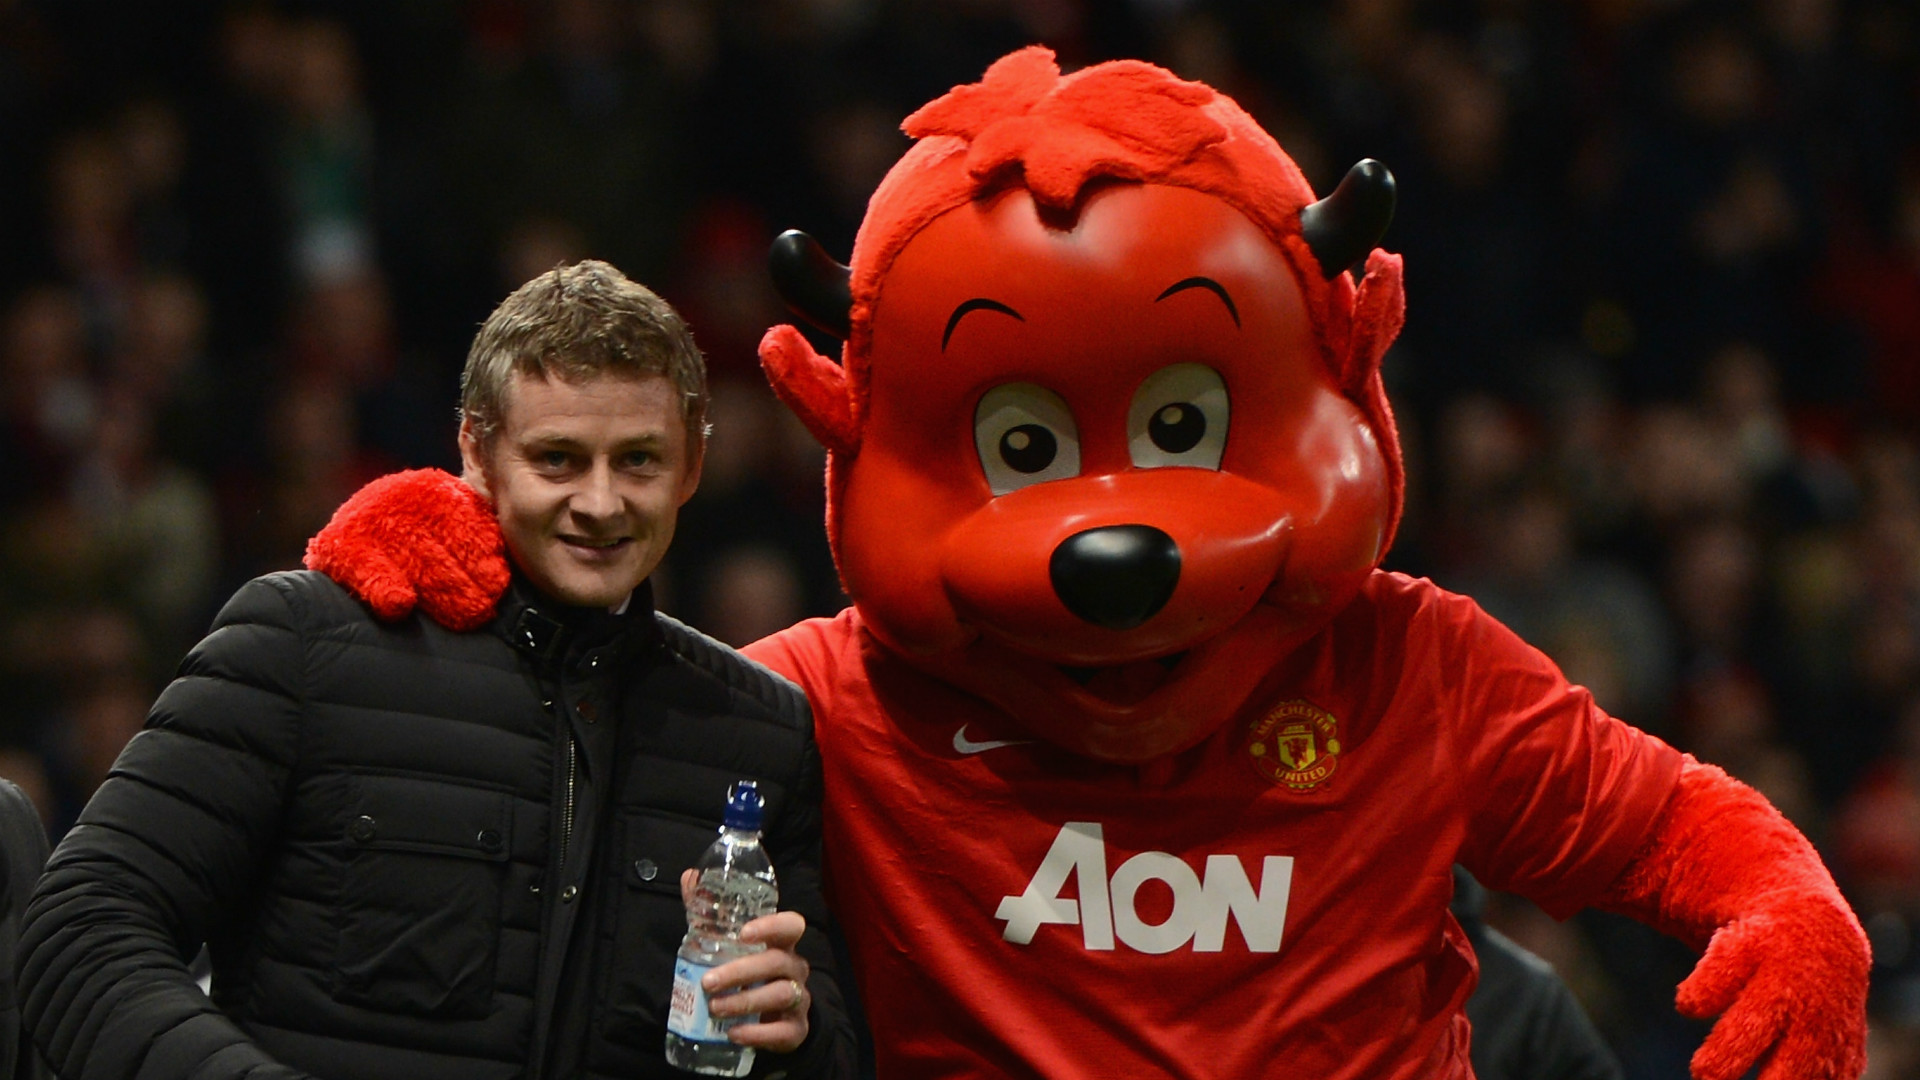 Ole Gunnar Solskjaer: Caretaker Manager says he will 'get Man Utd players enjoying football' again